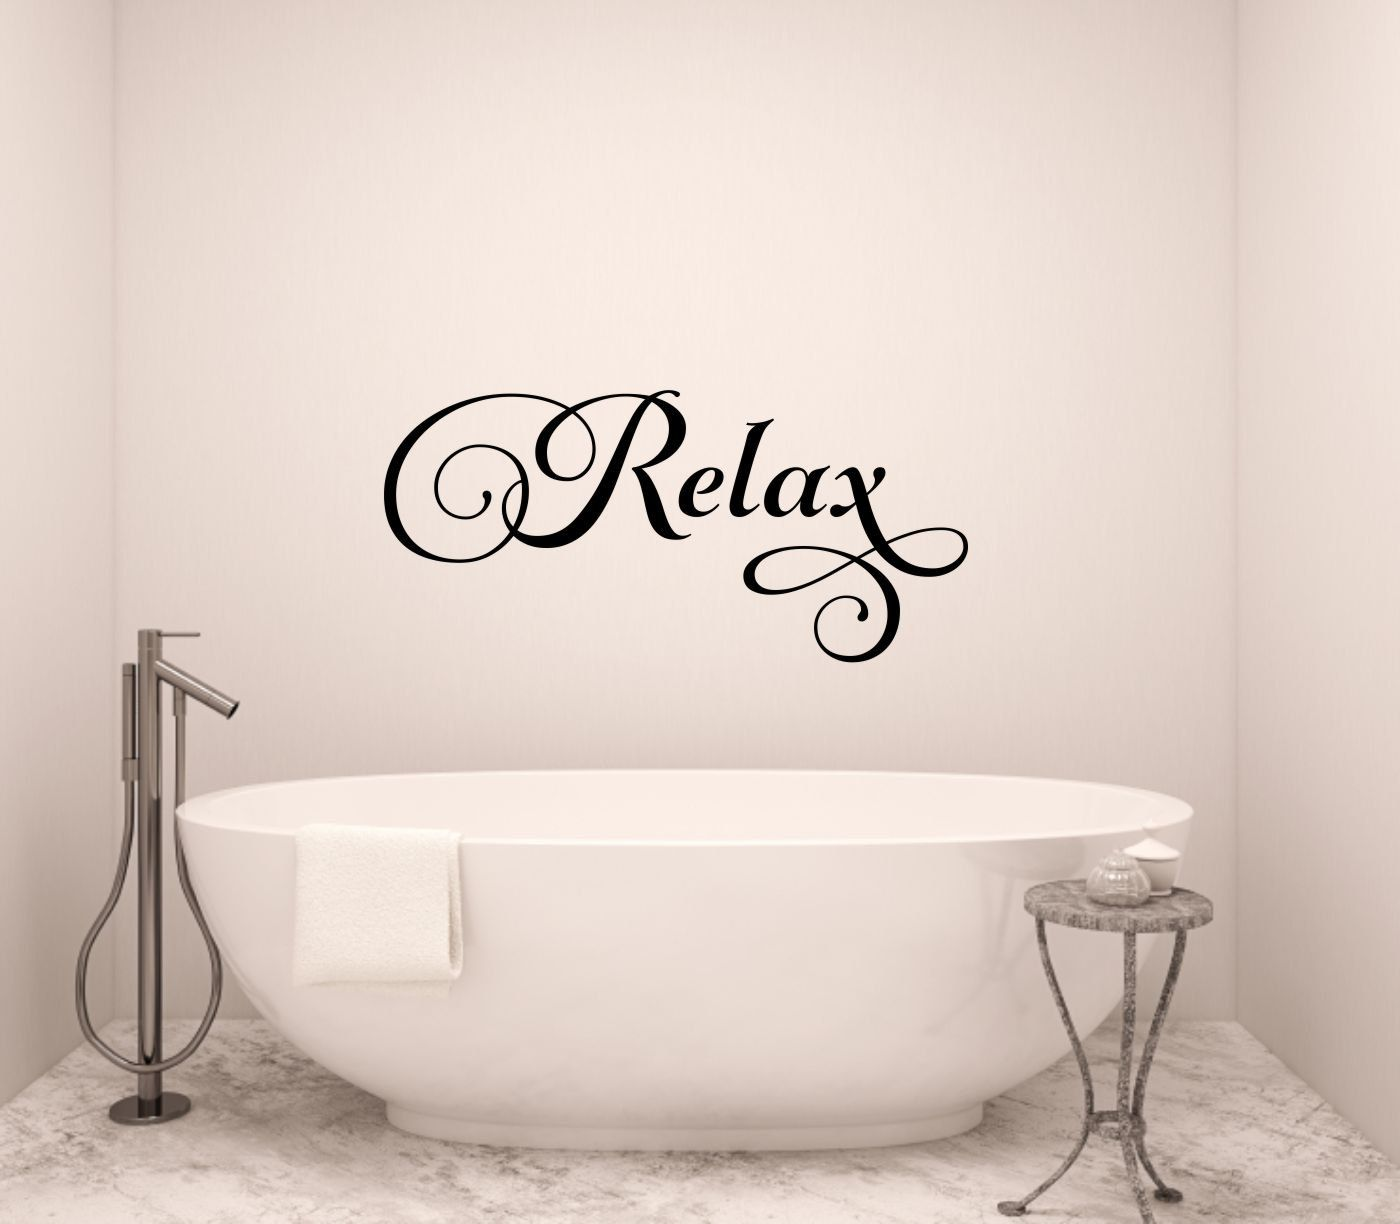 Bathroom wall decor stickers - Relax Wall Decal Bathroom Wall Decal Bathroom Vinyl Decal Bathroom Wall Words Bathroom Wall Decor Bathroom Decor Relax Vinyl Decal